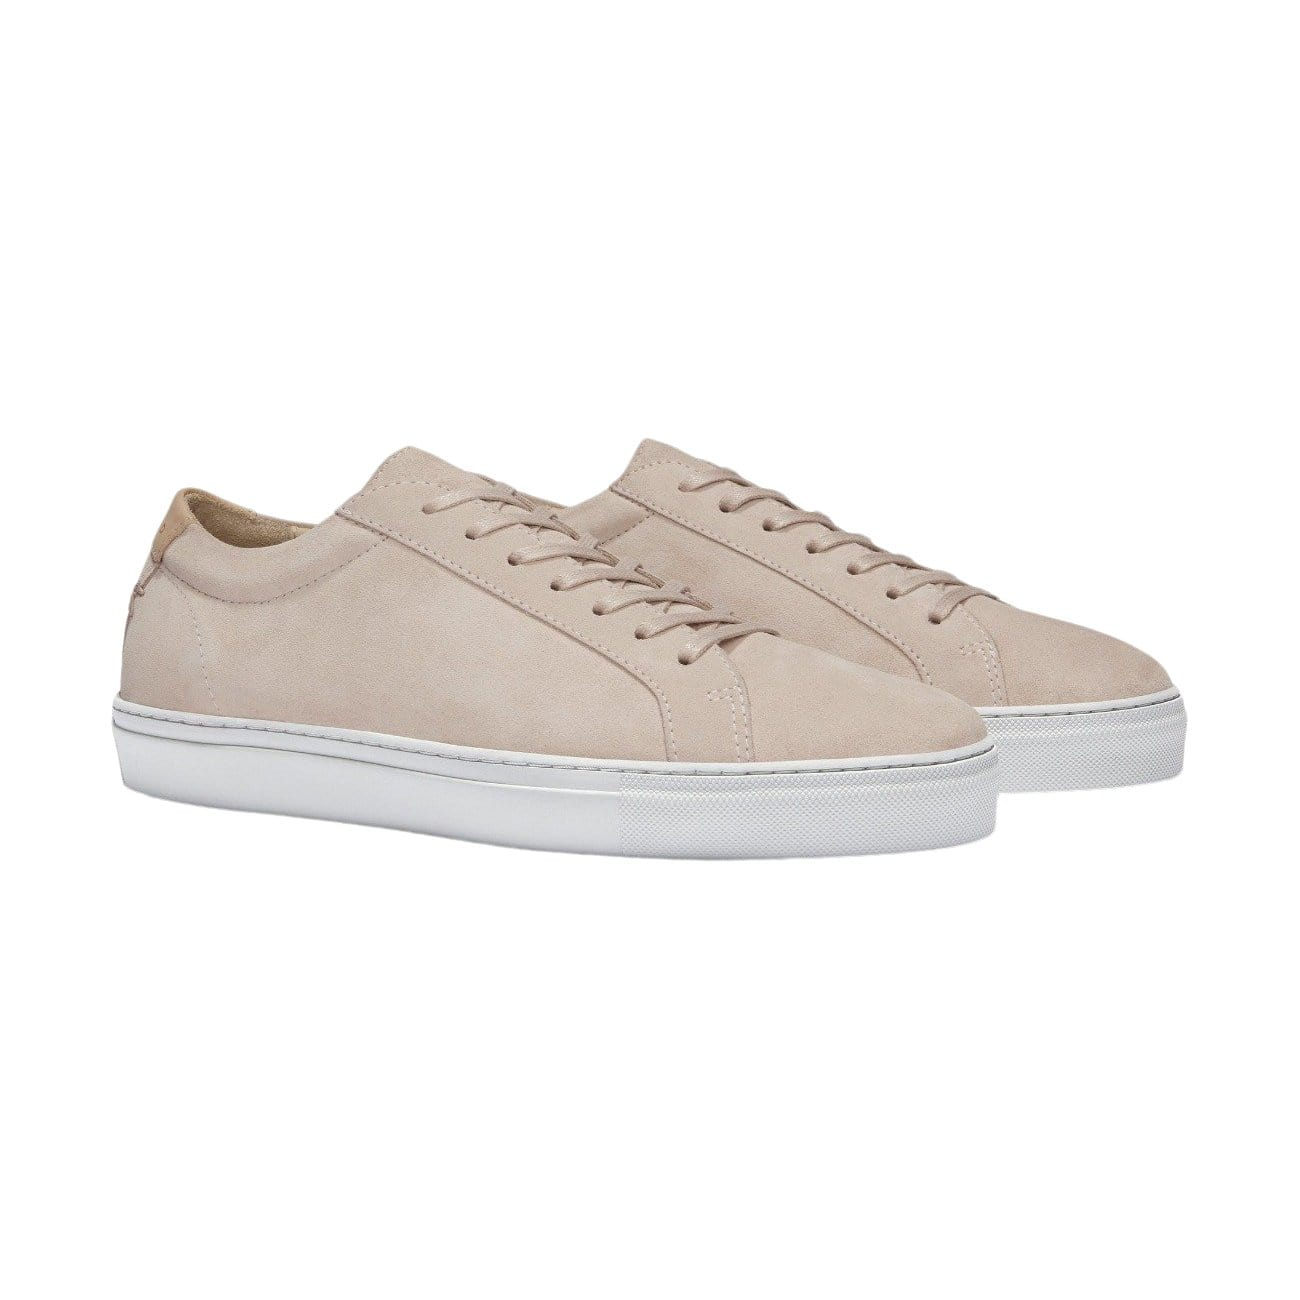 UNIFORM STANDARD SERIES 1 Women's SERIES 1 Blush Suede Sneaker